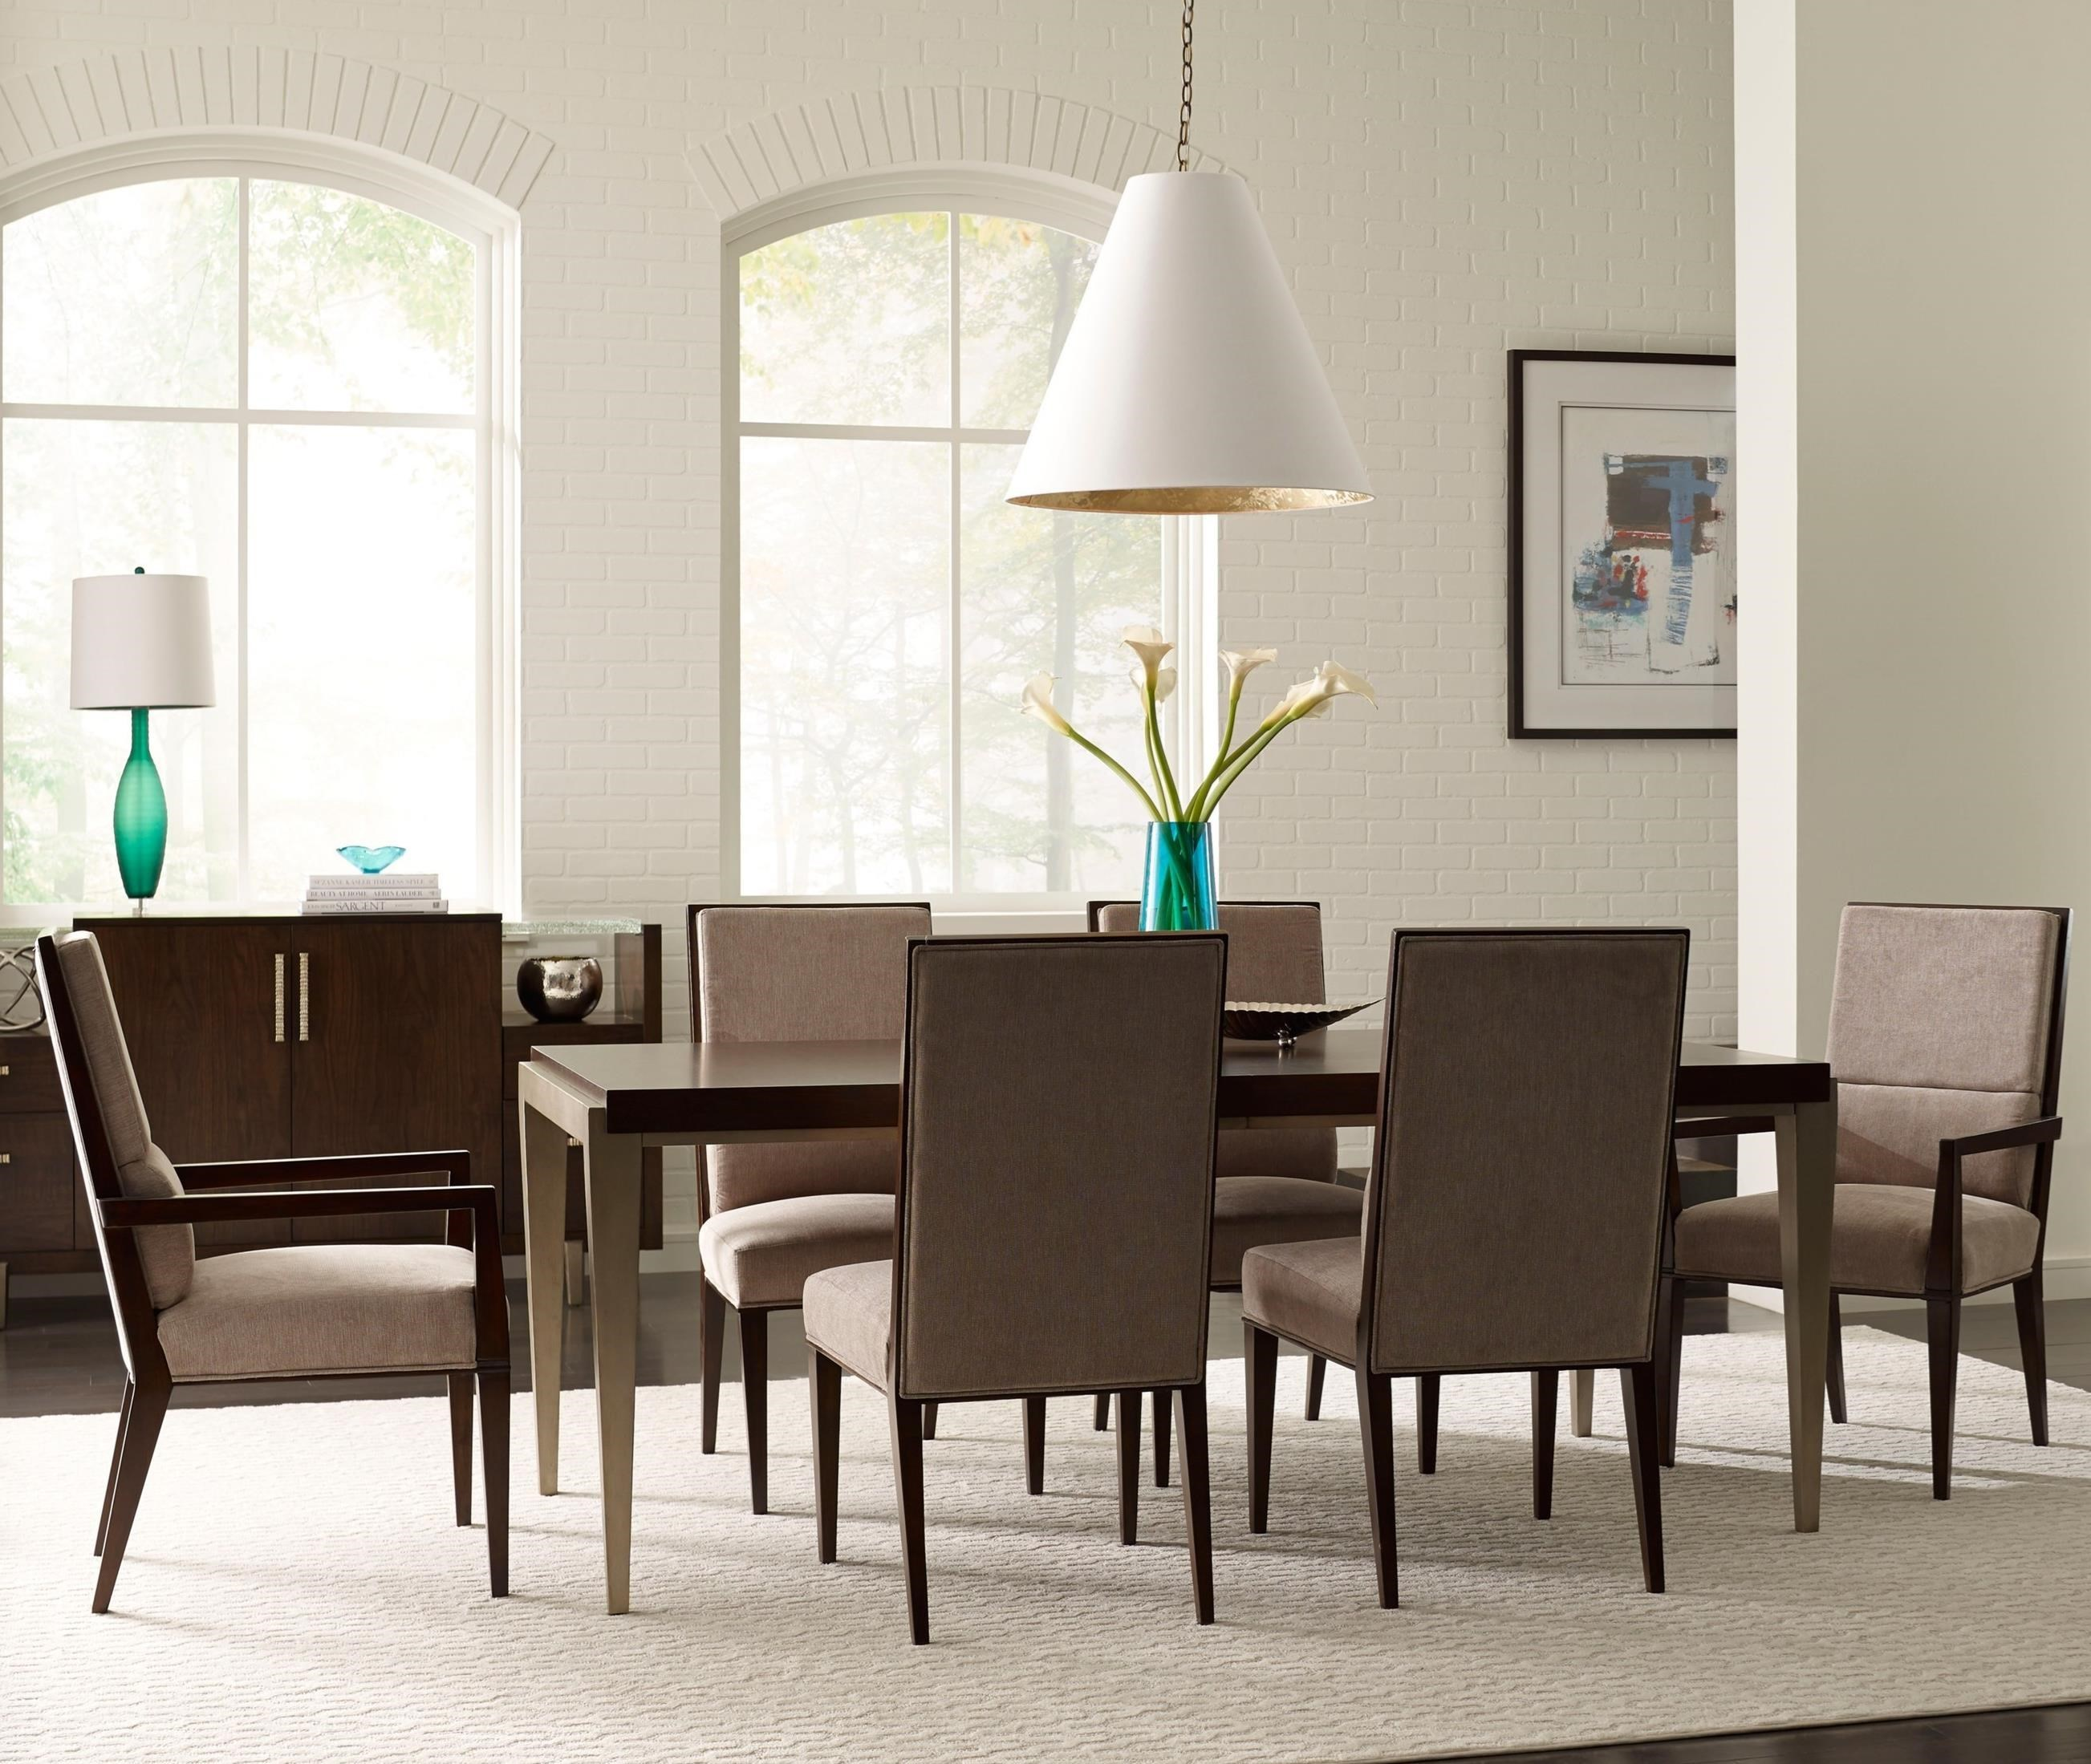 Thomasville174 Ave A Seven Piece Formal Dining Set with  : ave20a84721 7522B2x8822B4x881 b1jpgscalebothampwidth500ampheight500ampfsharpen25ampdown from www.darvin.com size 500 x 500 jpeg 47kB